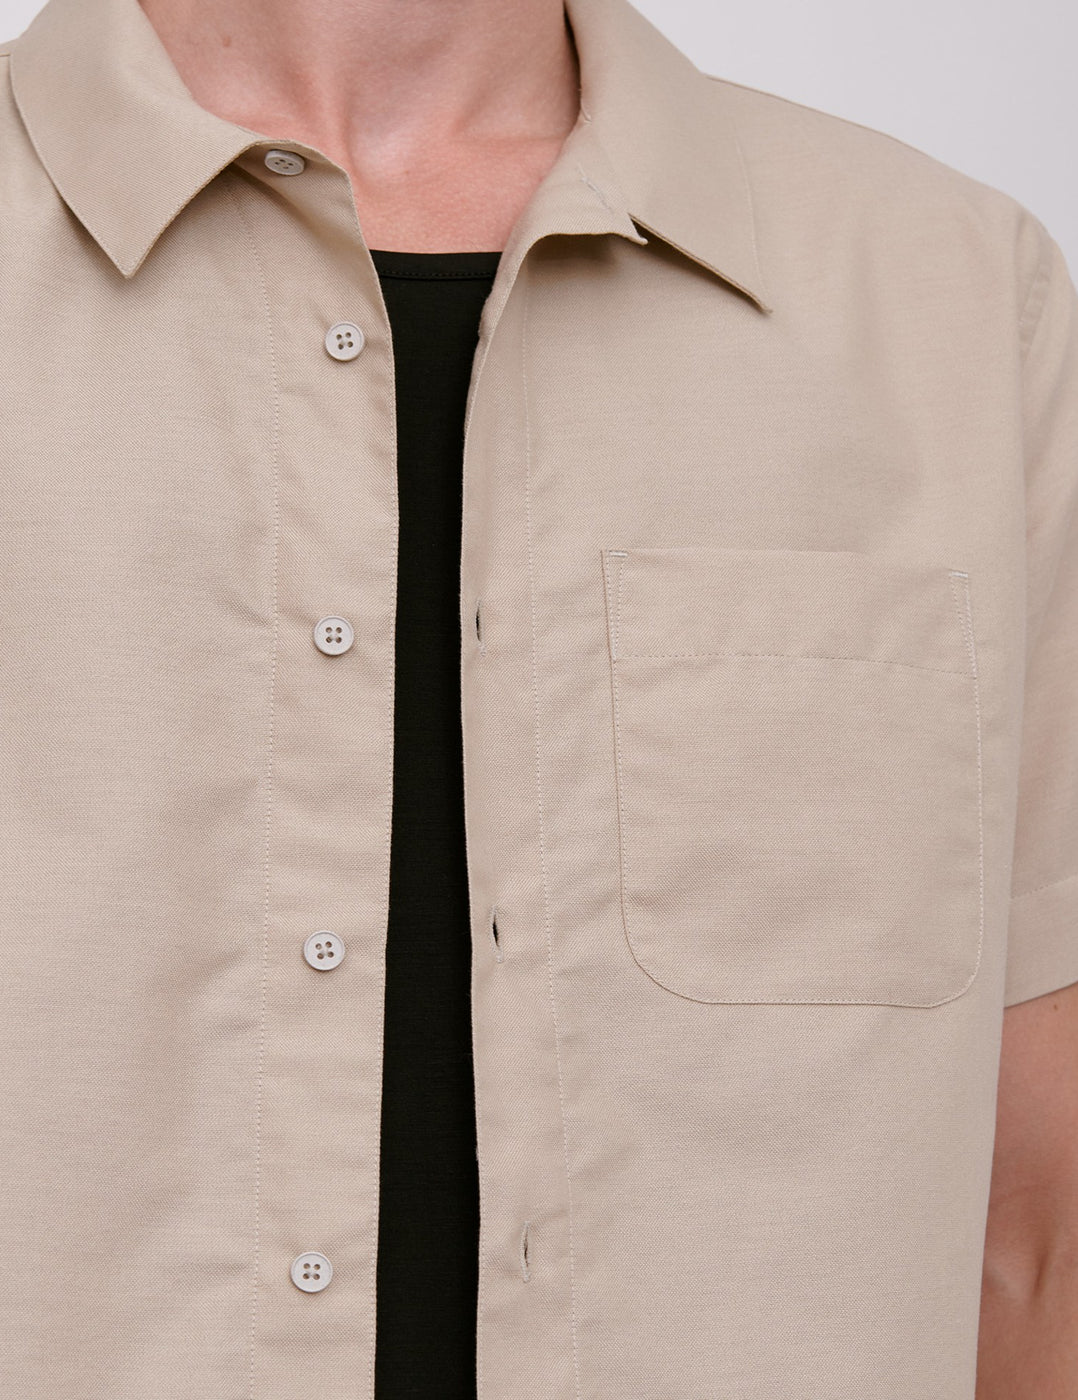 Organic Cotton Oxford Short-Sleeved Shirt